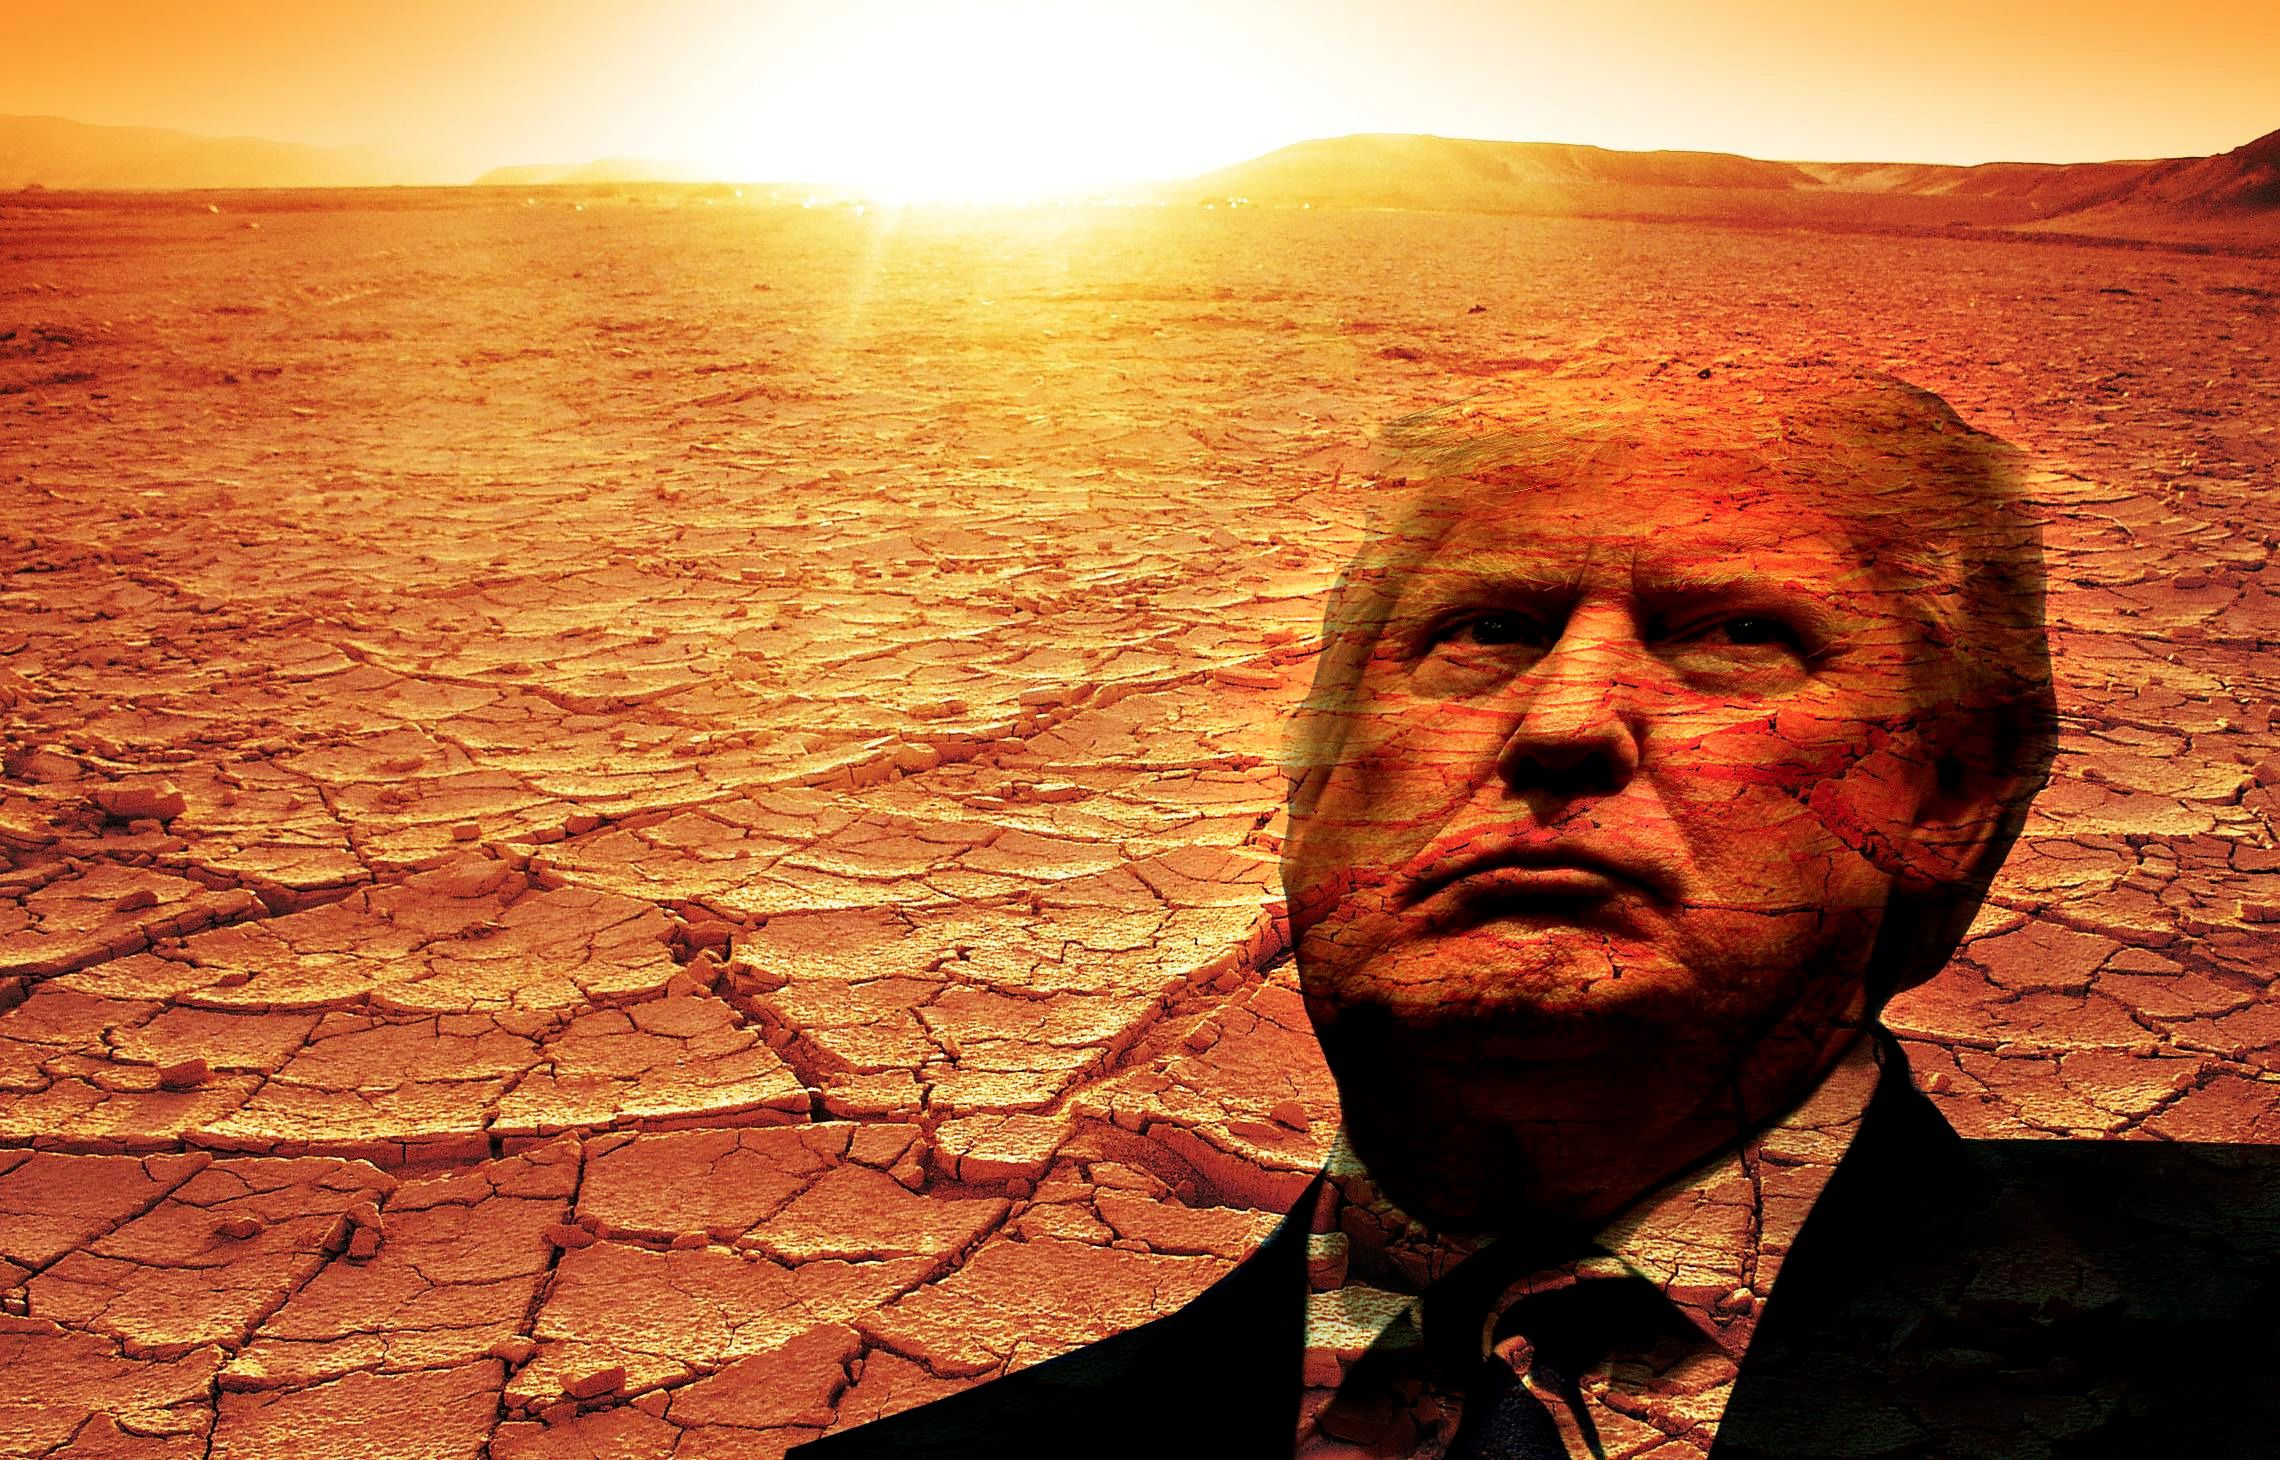 A group of interfaith leaders view Donald Trump's election as akin to a drought, and are fasting to plead for relief.